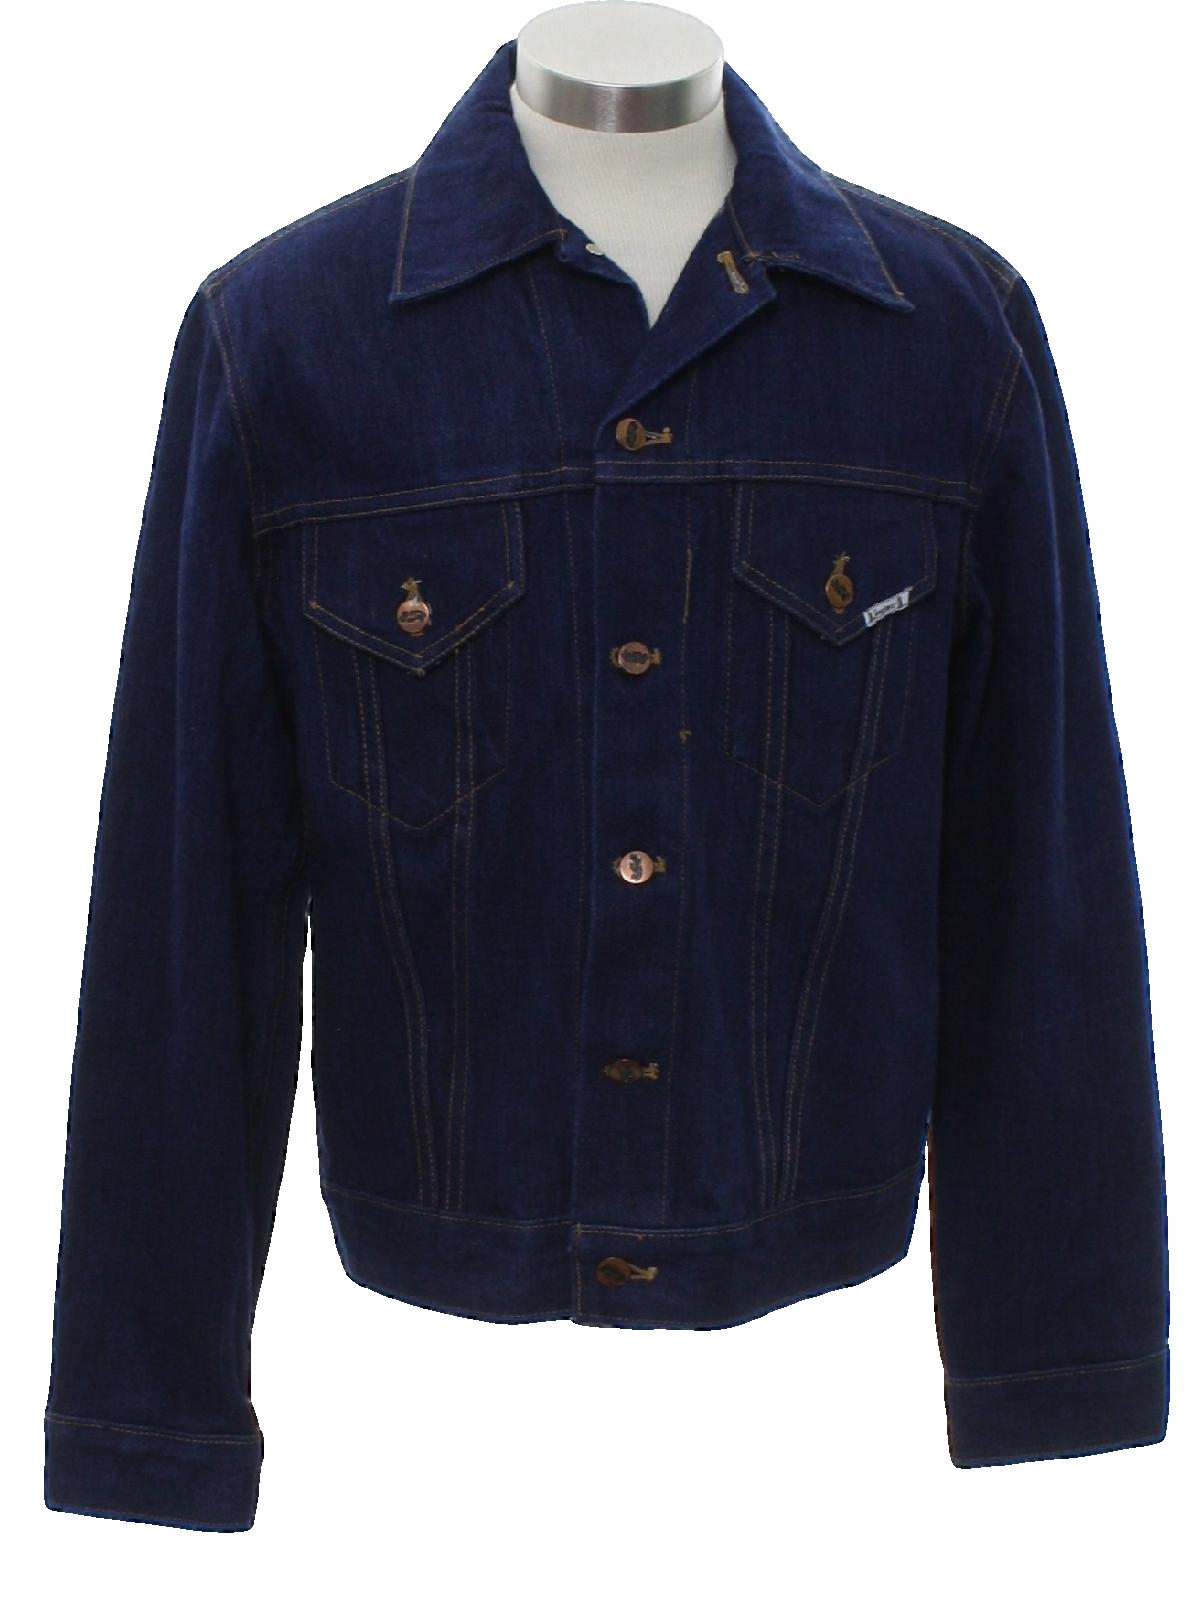 Mens jacket cotton - Vintage Jinglers Sixties Jacket Late 60s Jinglers Mens Dark Blue Cotton Denim Western Style Jacket With Waist Length Styling Tapered Sides